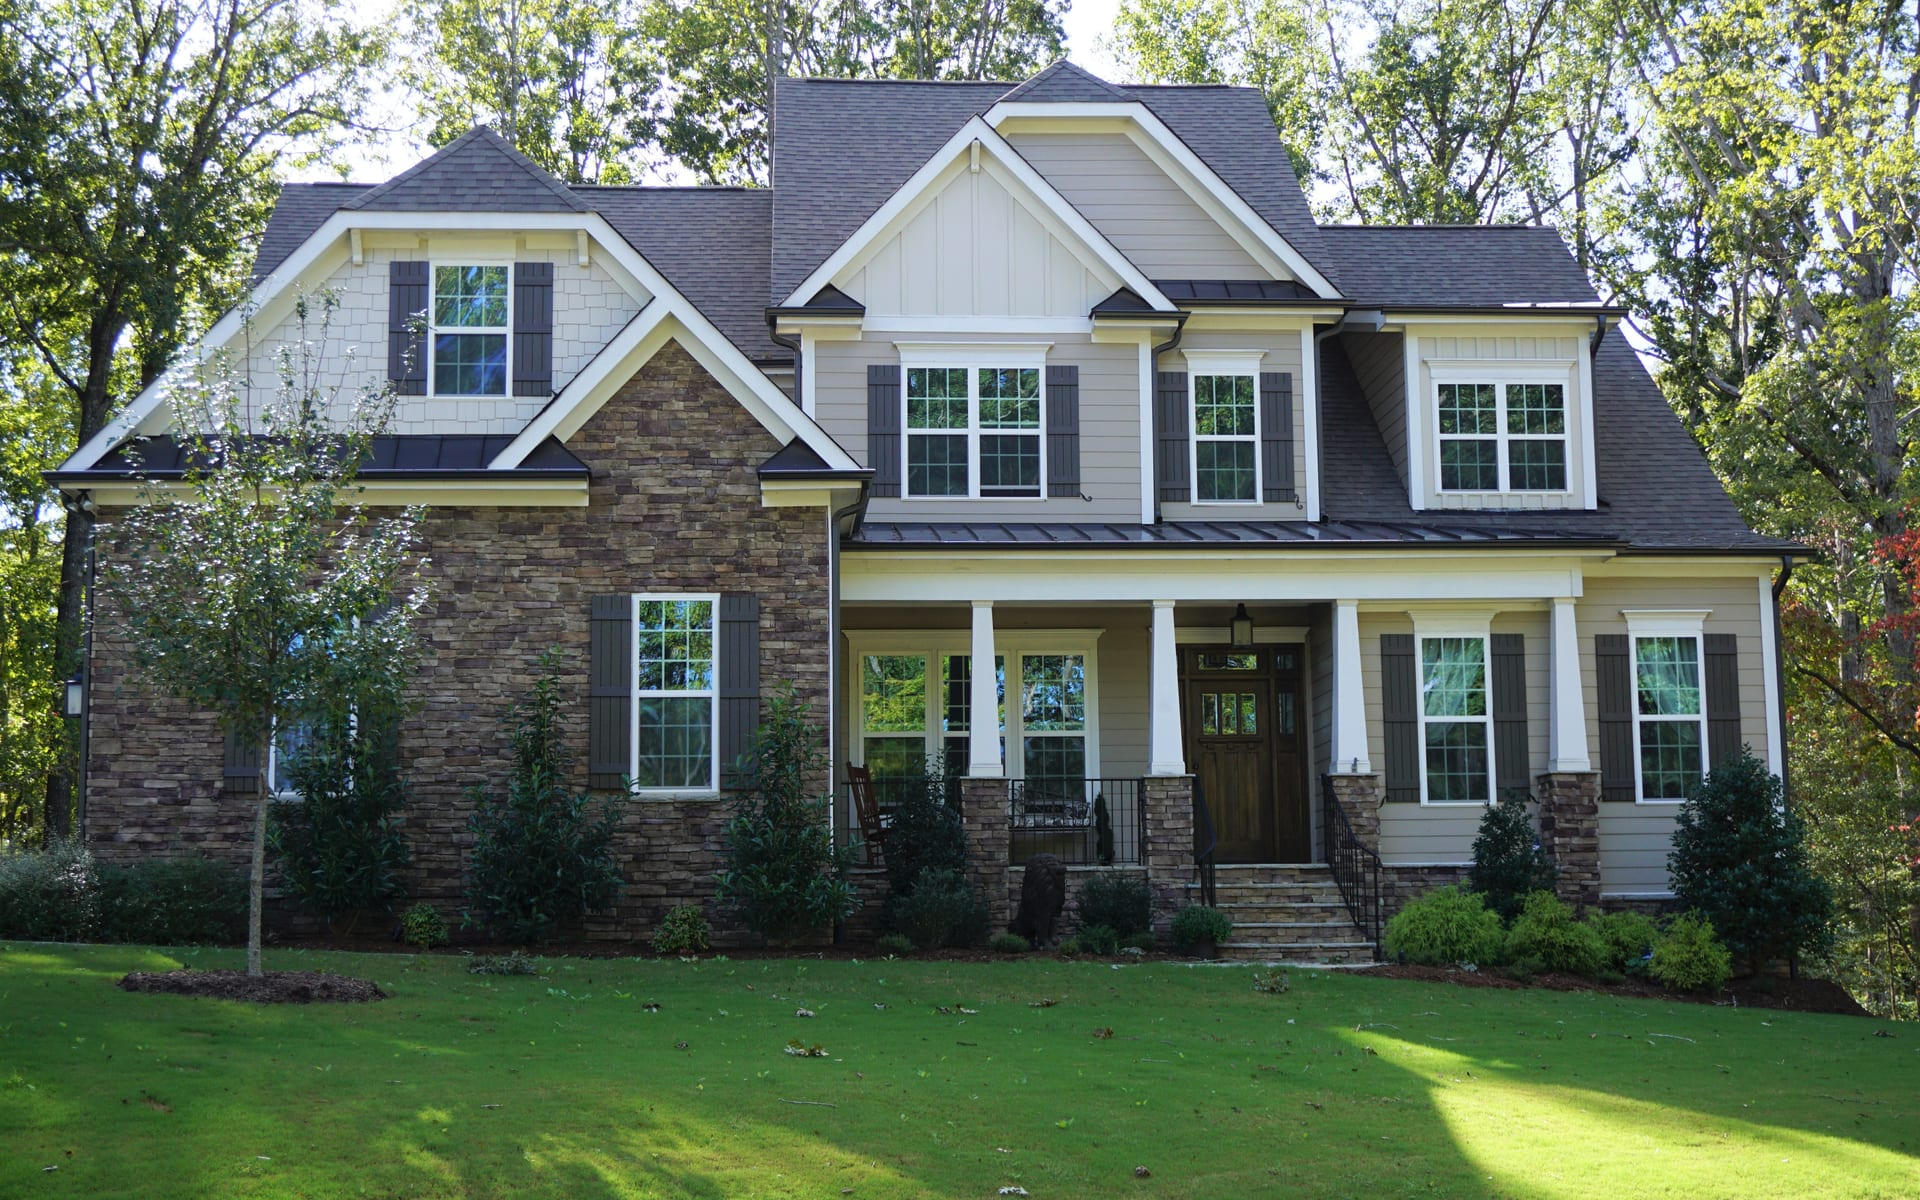 Have You Ever Considered Purchasing a Home in Raleigh, North Carolina